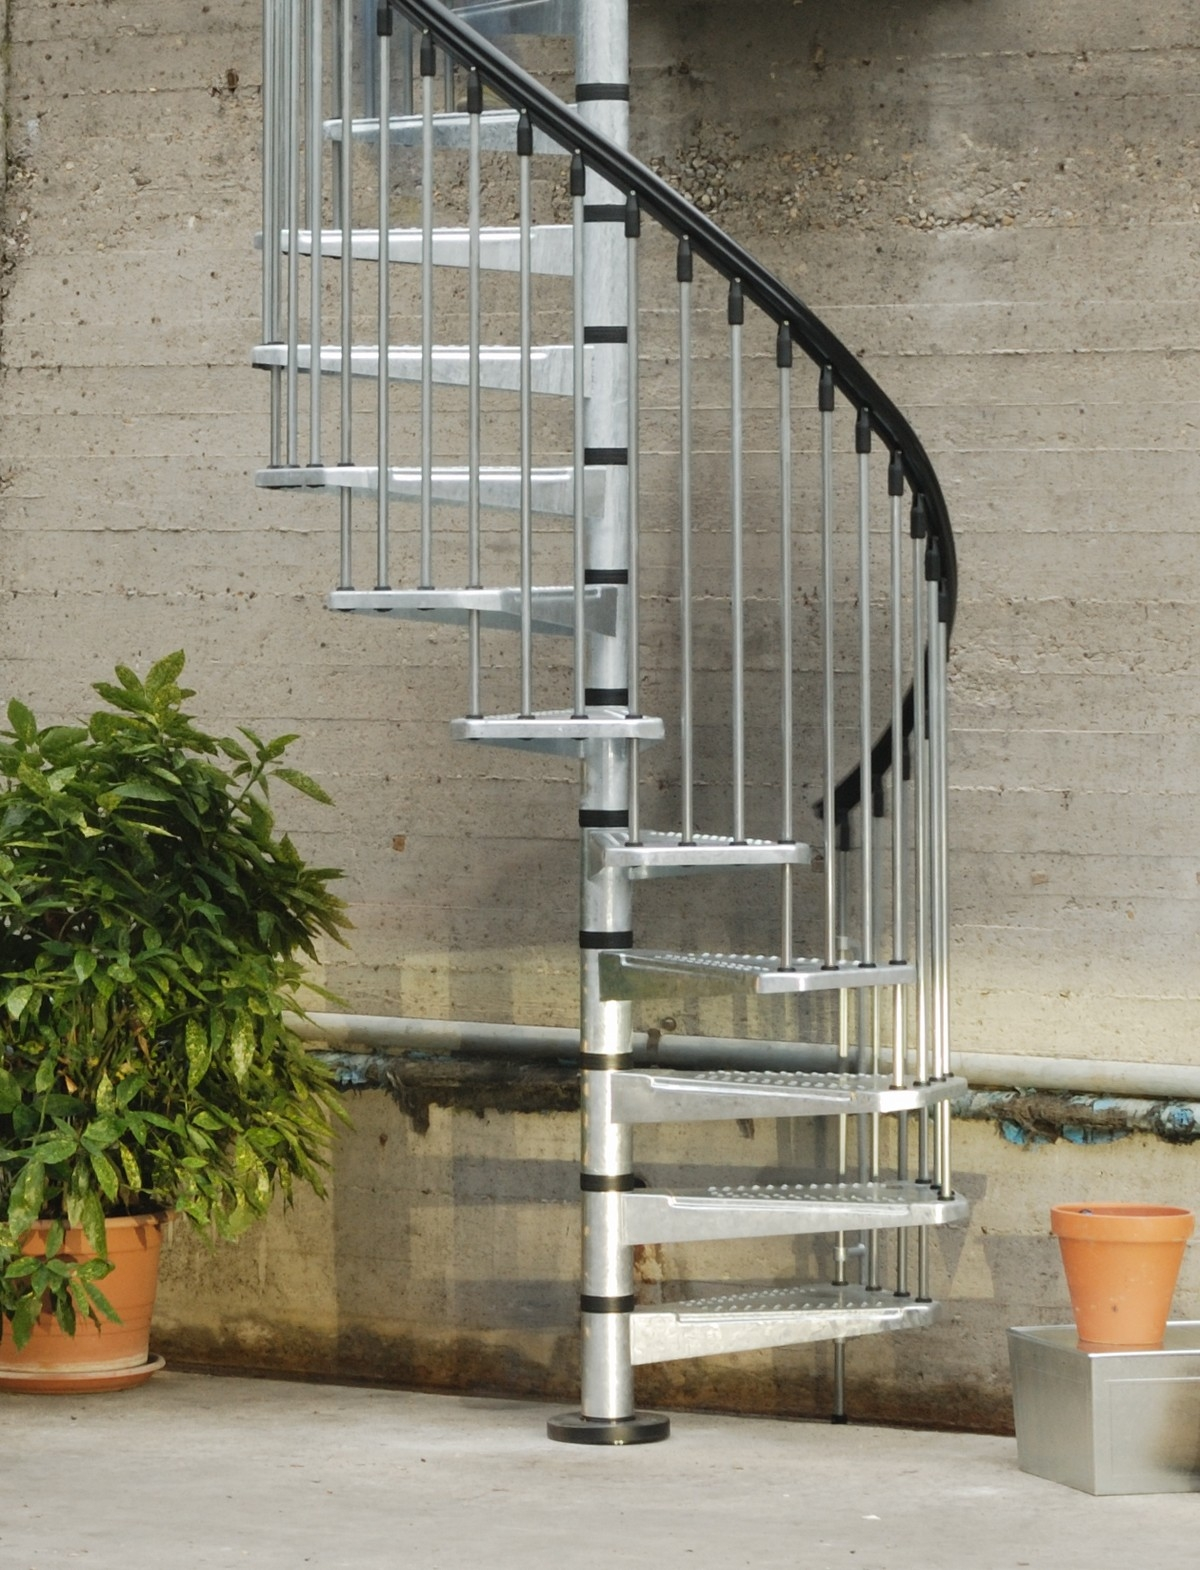 Metal Outdoor Spiral Staircase Exterior Stairs | Outdoor Spiral Staircase Prices | Stair Case | Wrought Iron | Stainless Steel Spiral | Handrail | Stair Parts